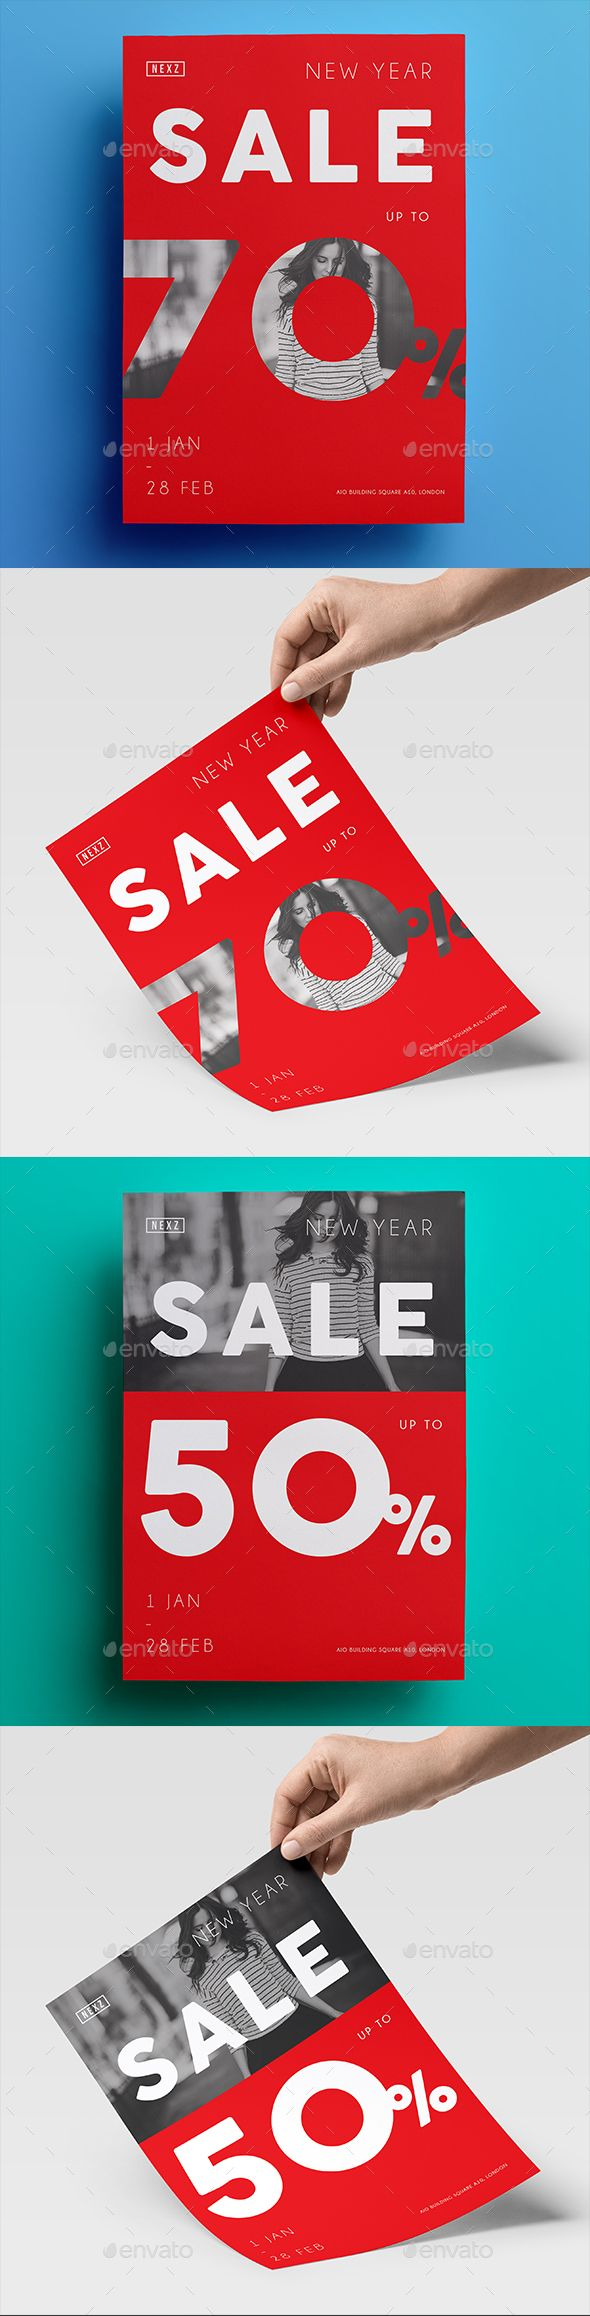 Sale Flyer Template PSD #ads